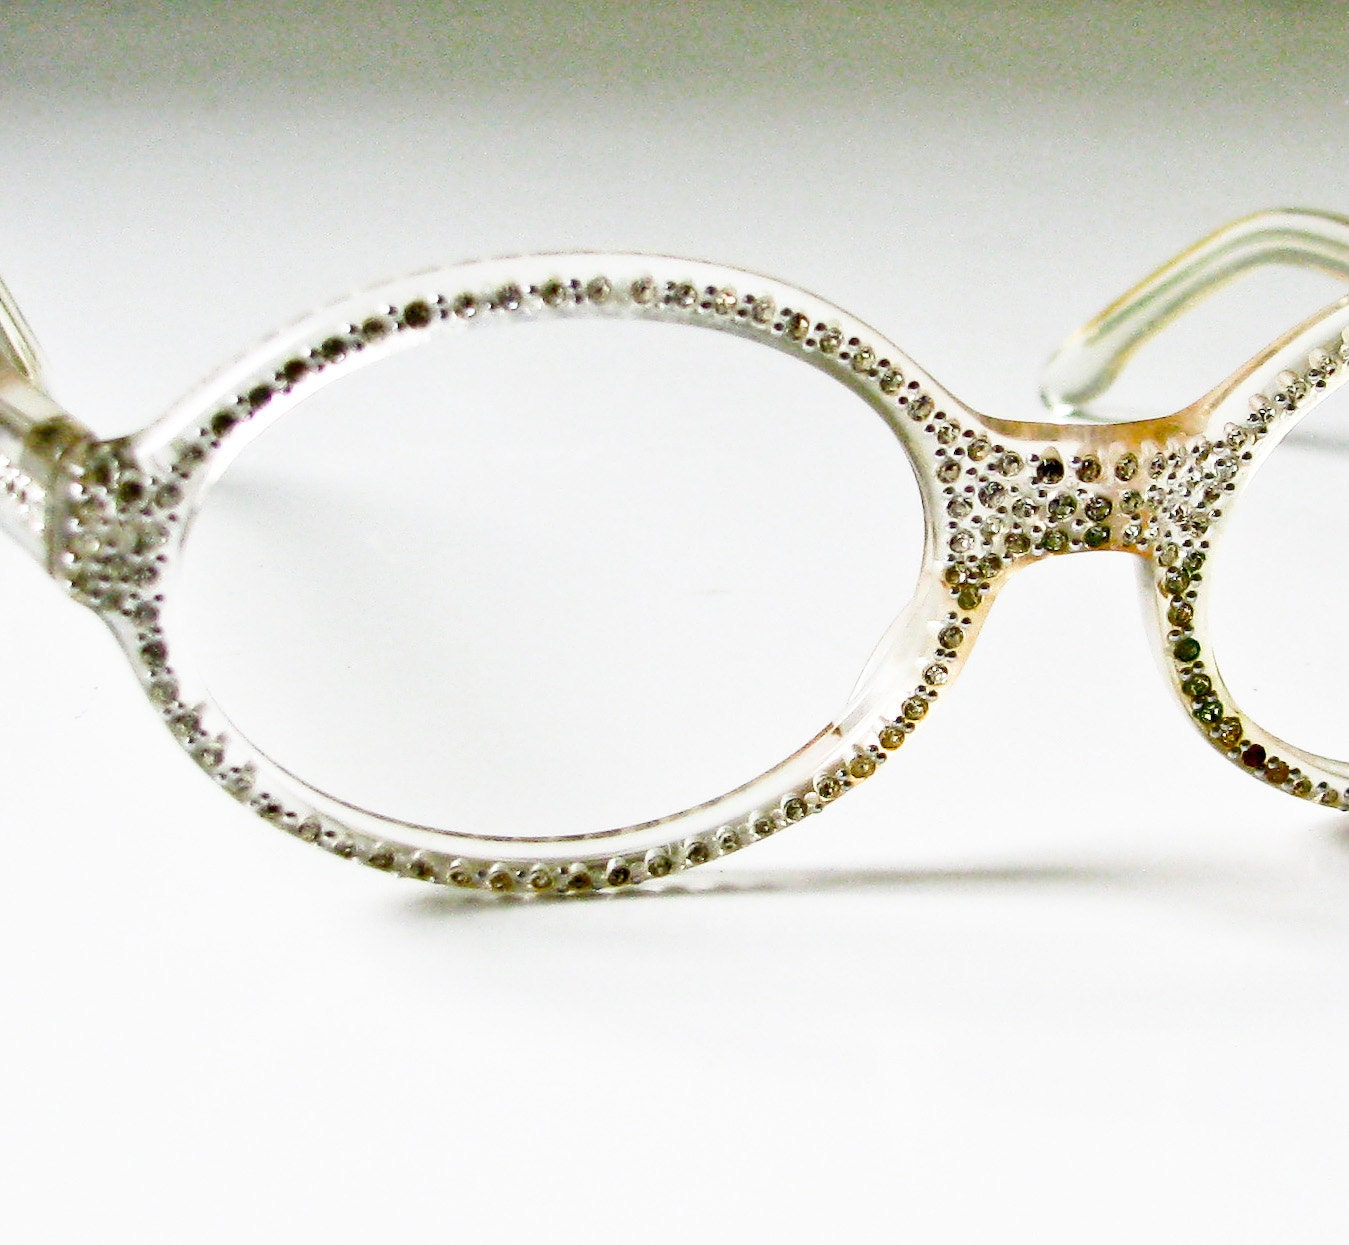 Eyeglasses Frames With Bling : 1950s Clear Plastic and Rhinestone eyeglass Frames